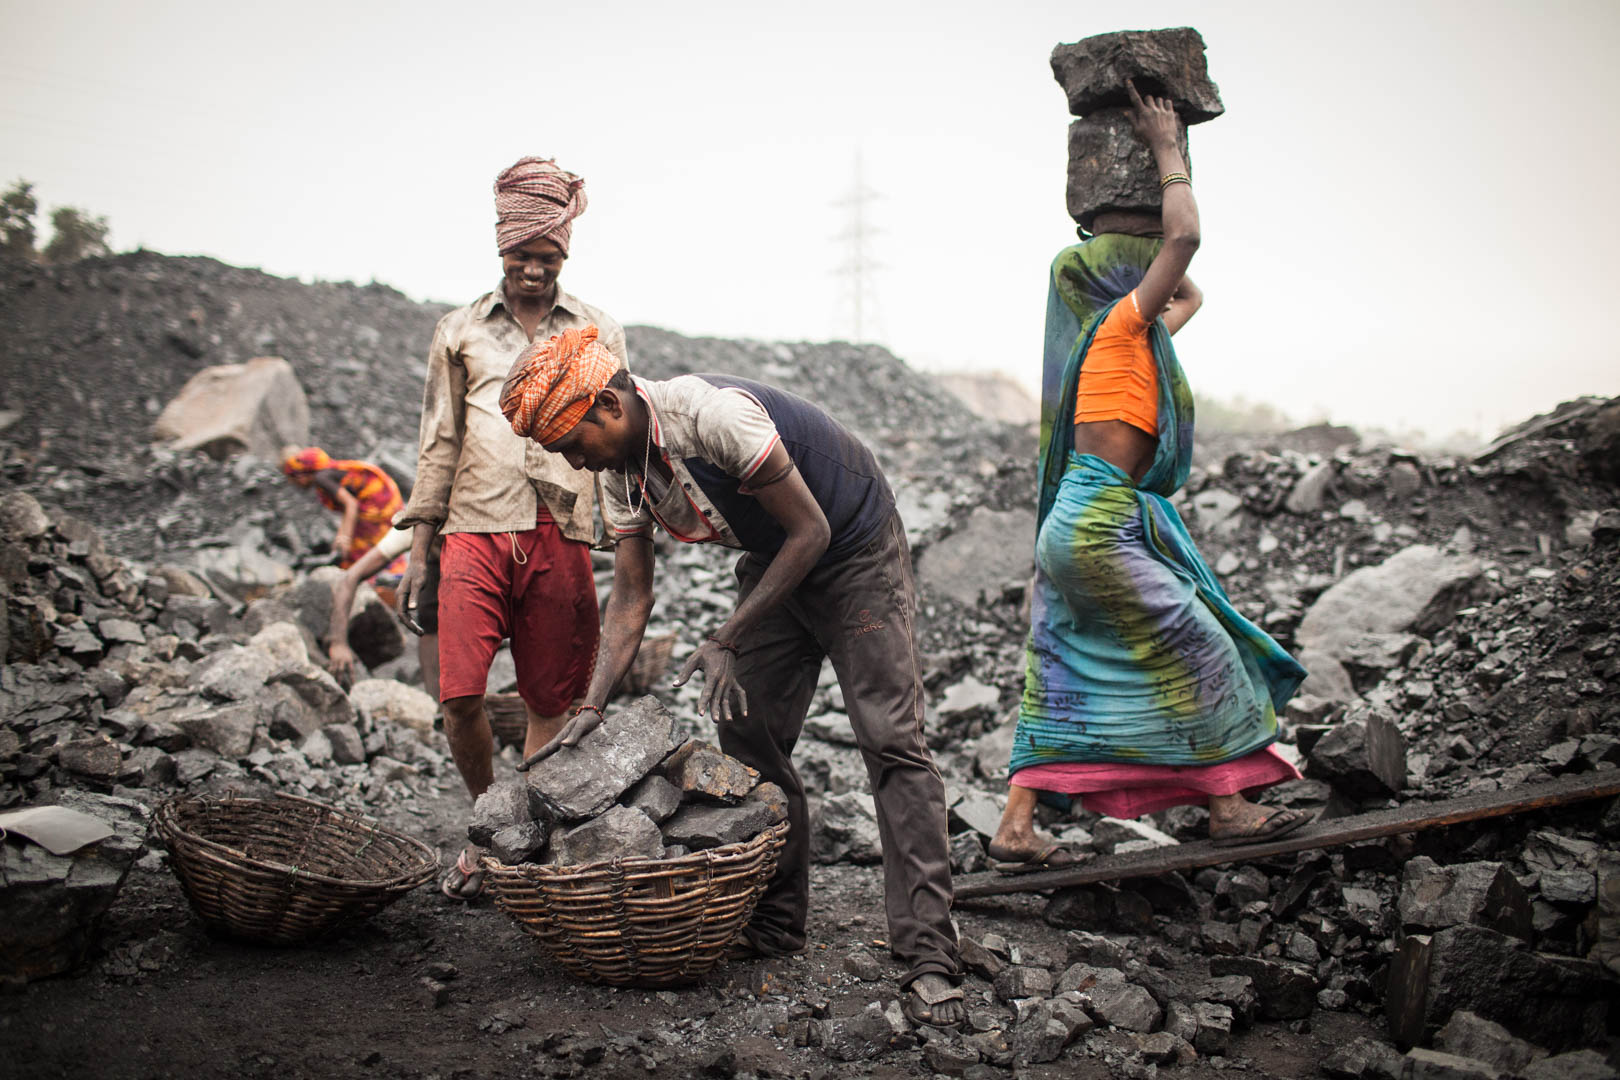 A group of workers are transporting the  coal that they have collected in the morning to a nearby truck.